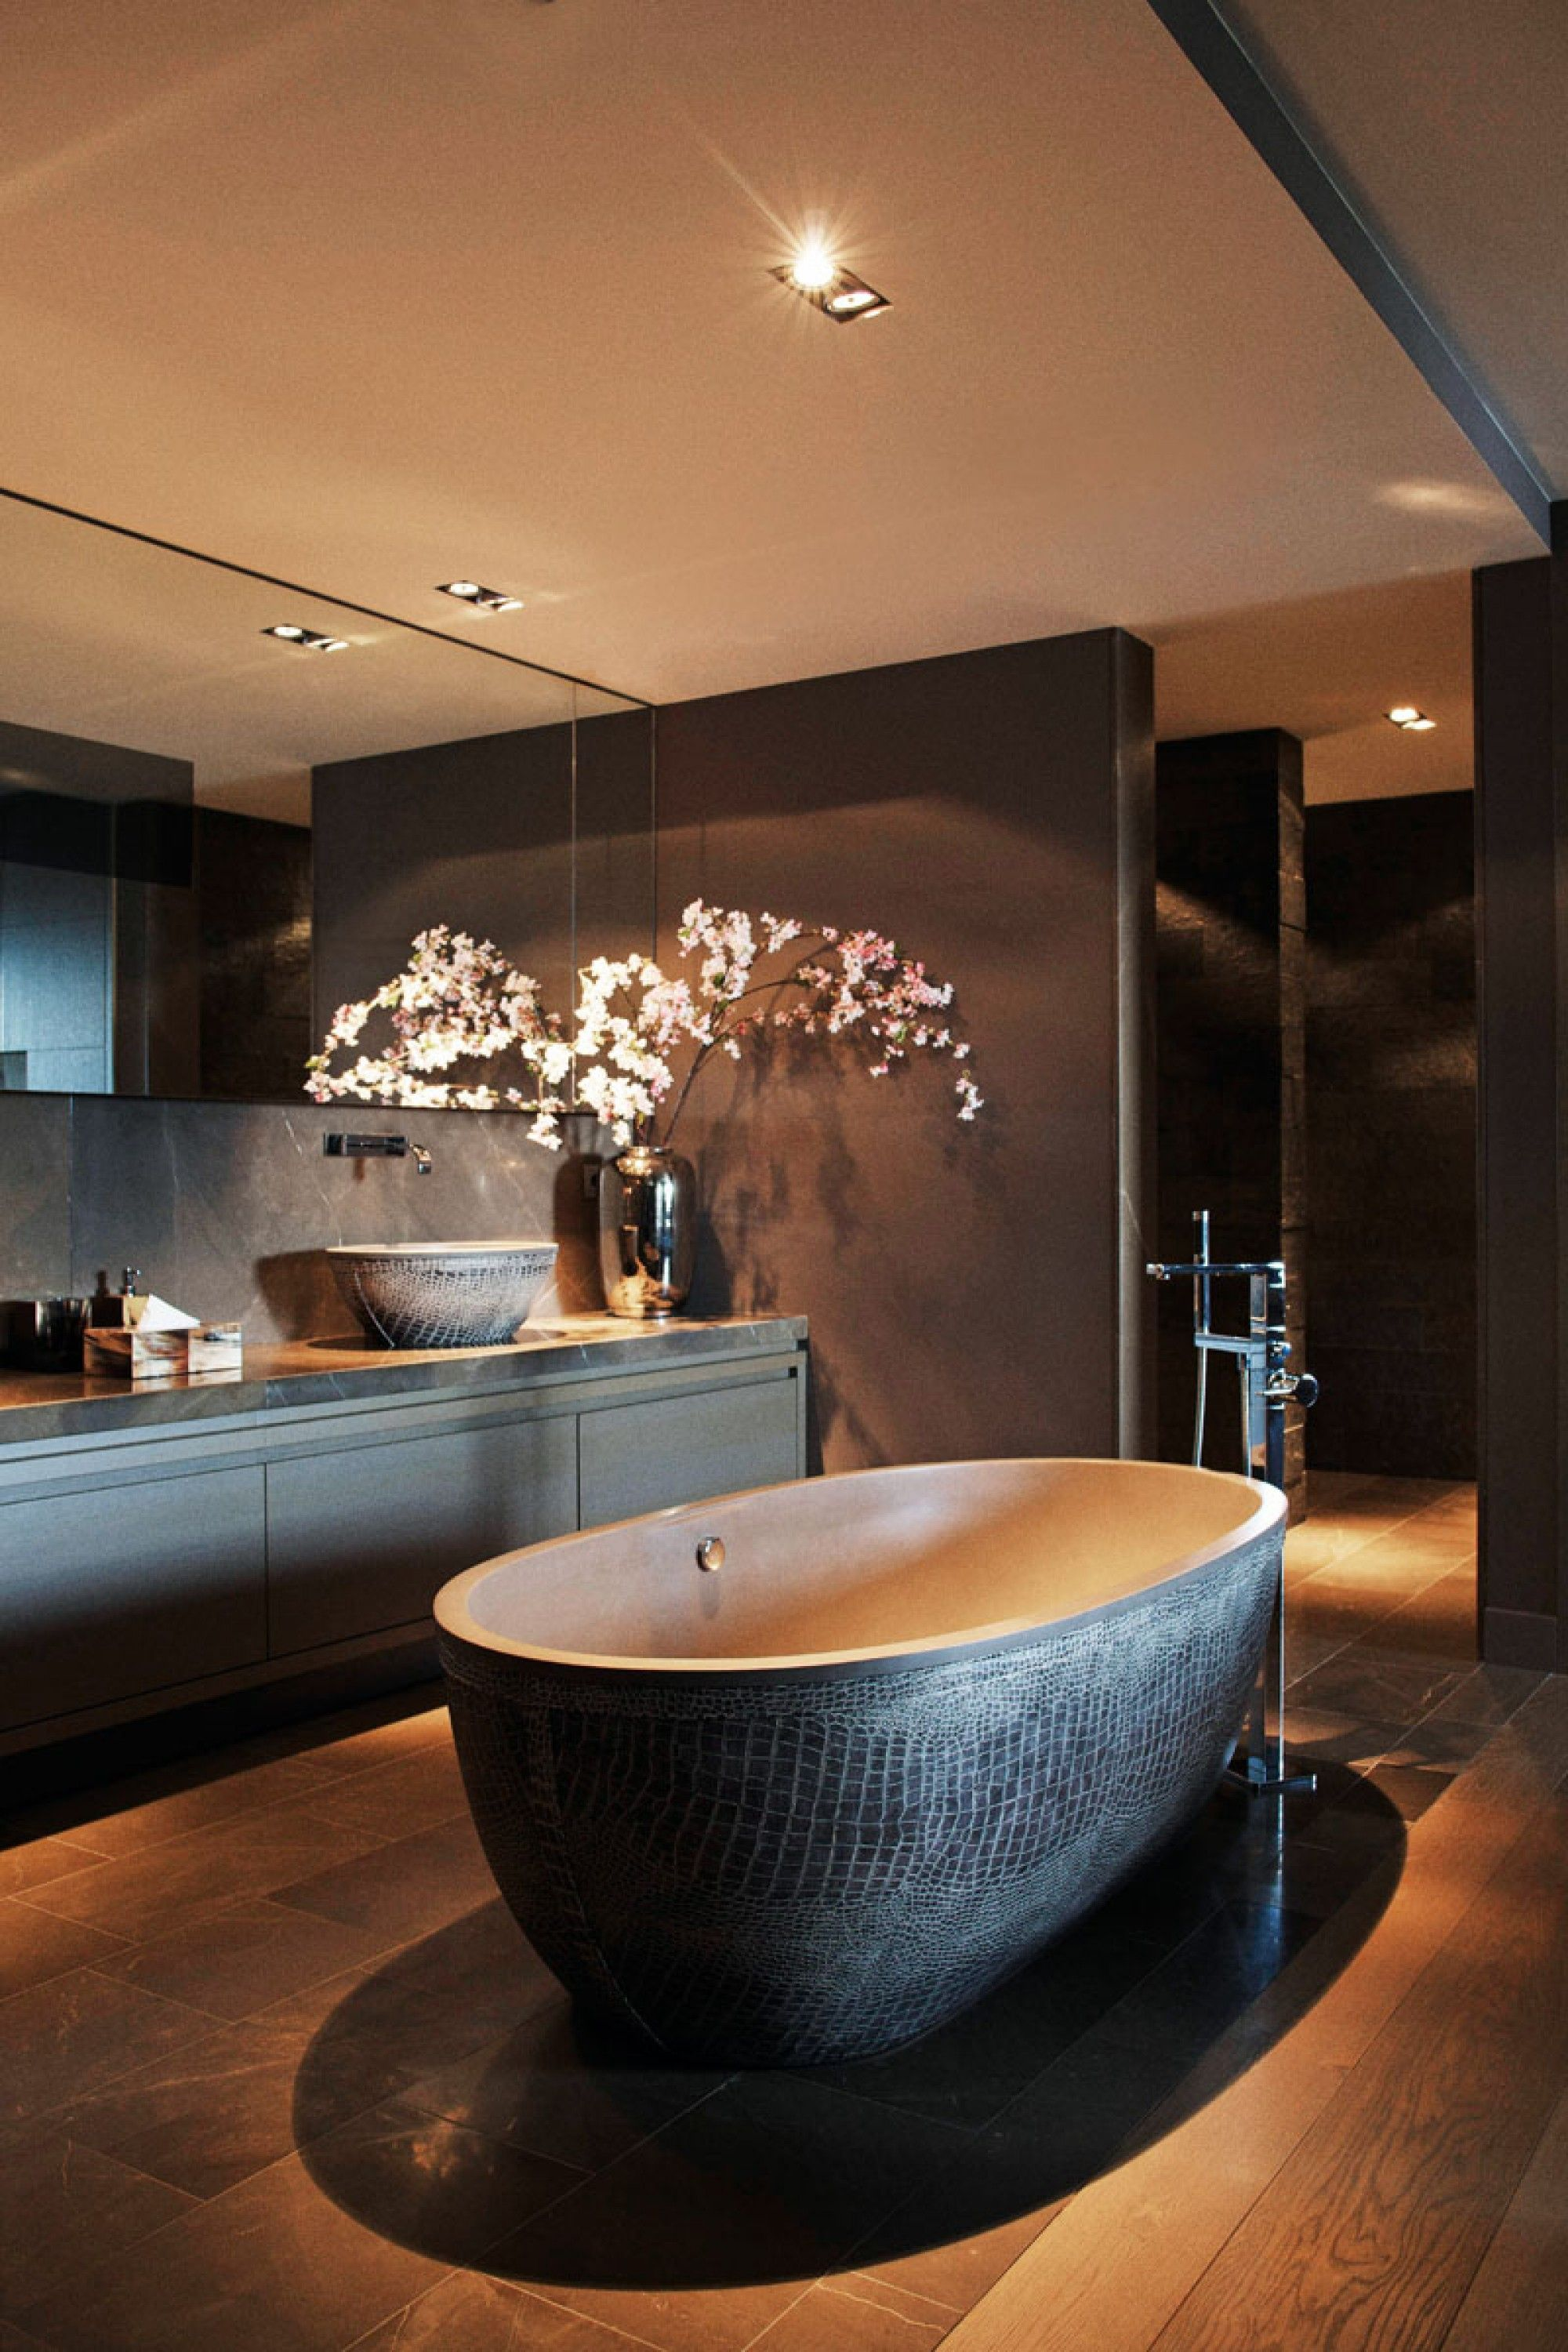 With an open floor plan a Free Standing Tub could be the perfect fit for your Bathroom Remodel